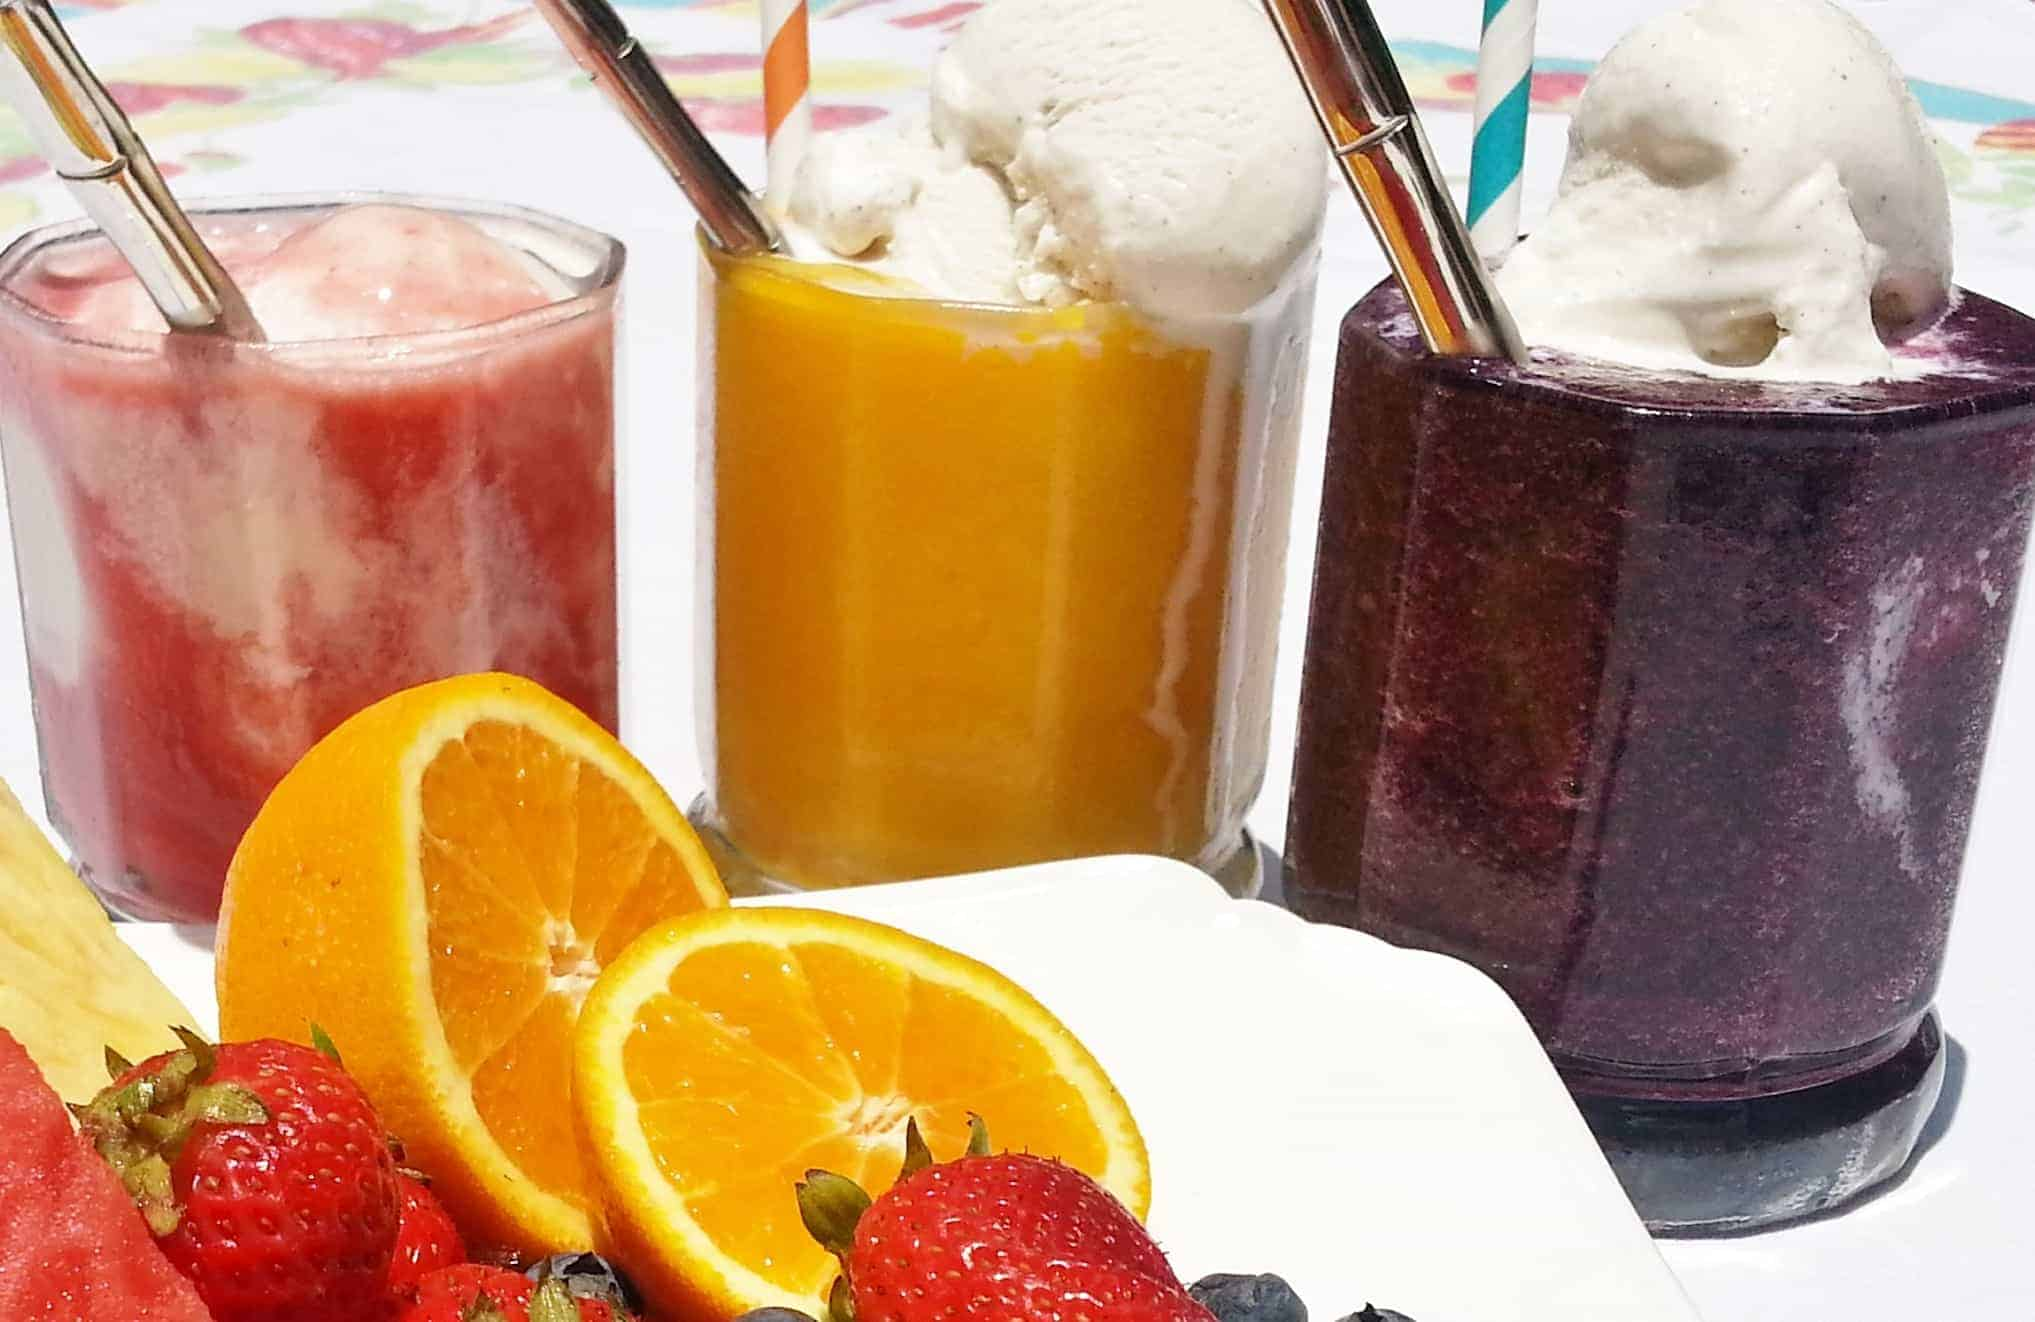 Real fruit floats